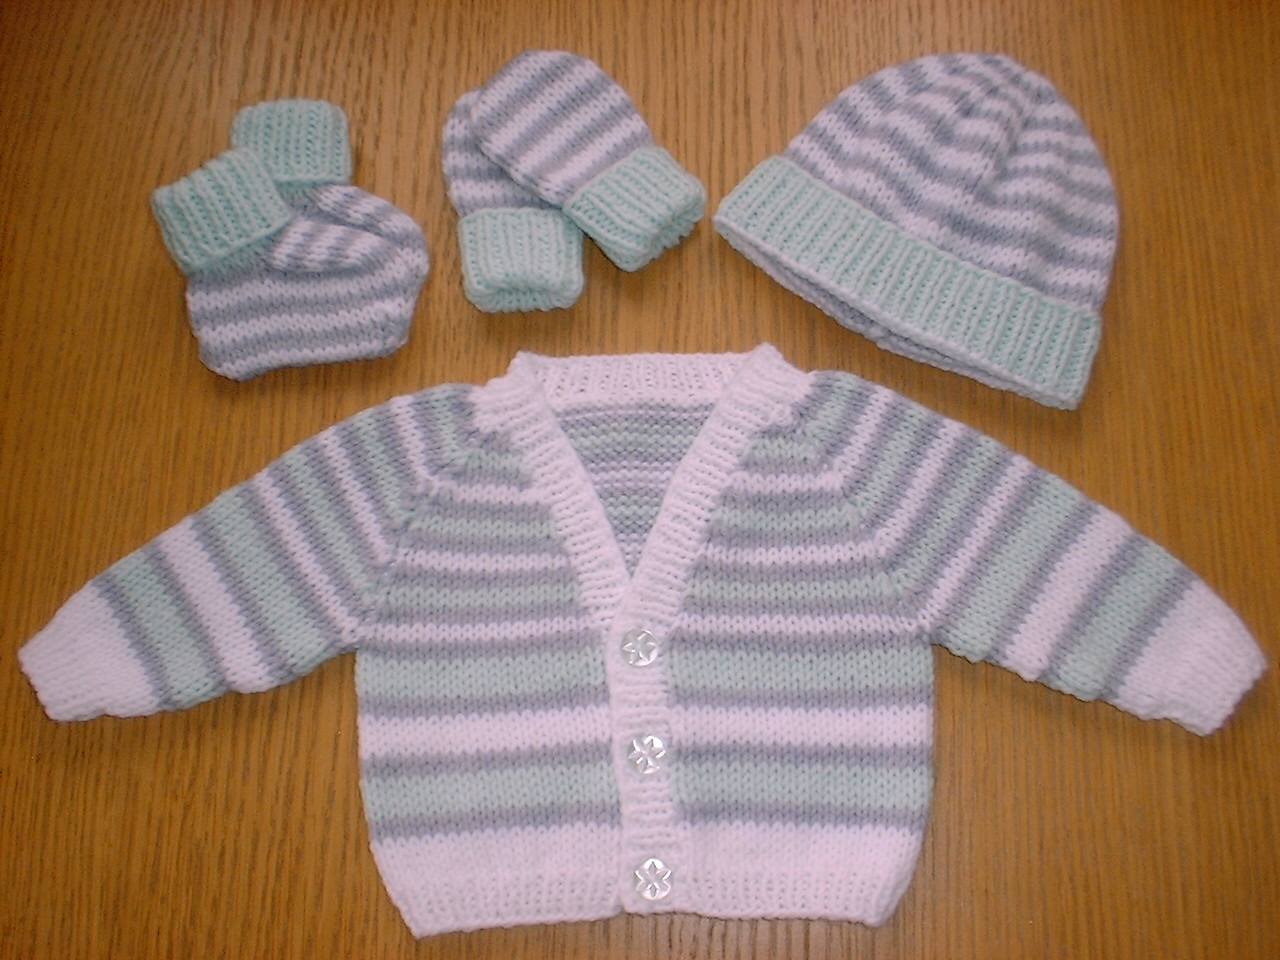 Knitting Patterns For Very Premature Babies : Angela Turner Designs